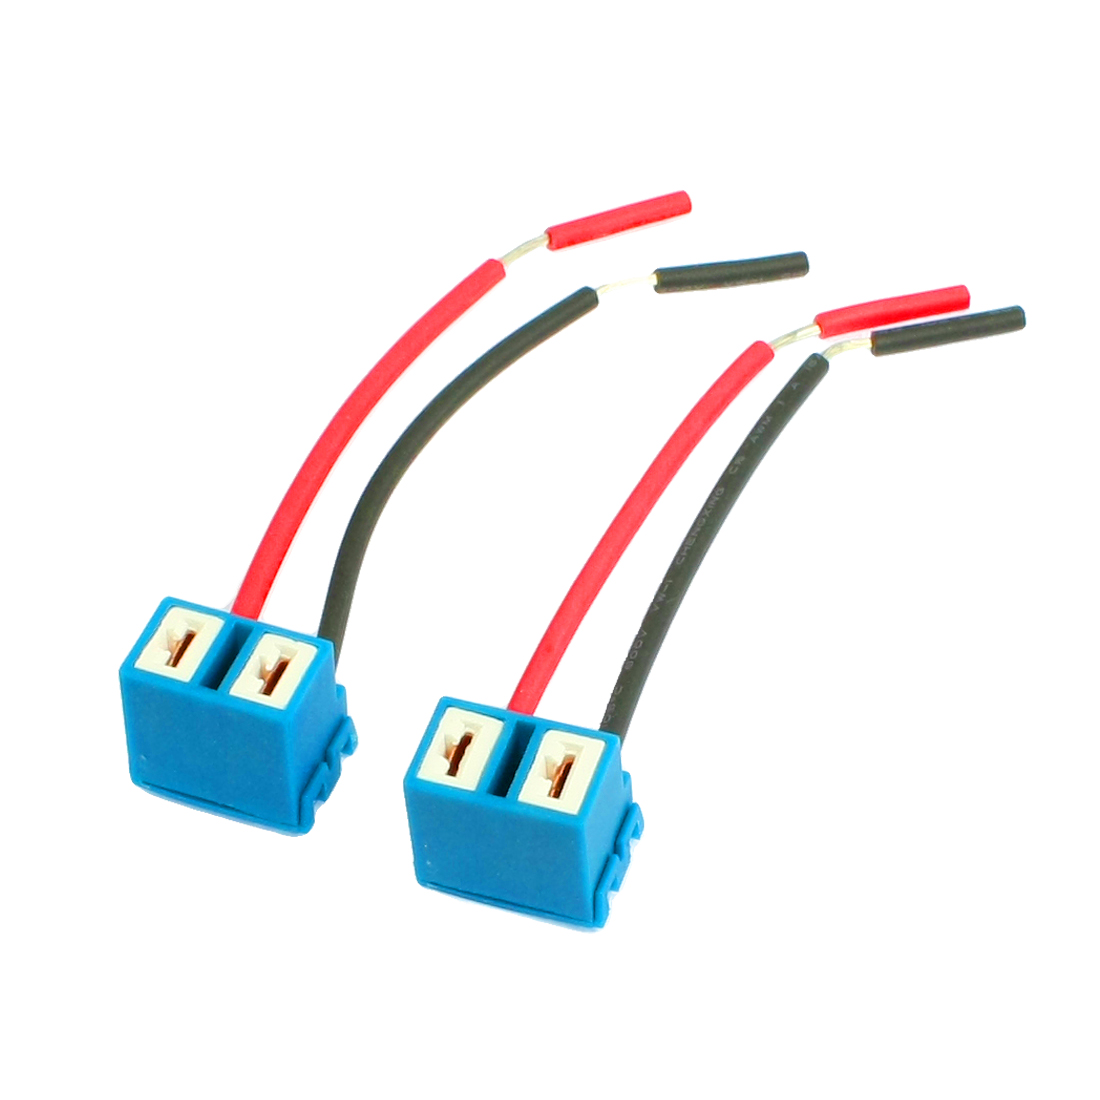 2Pcs DC12V Angled Socket H7 Ceramic Extention Headlight Connector Wiring Harness